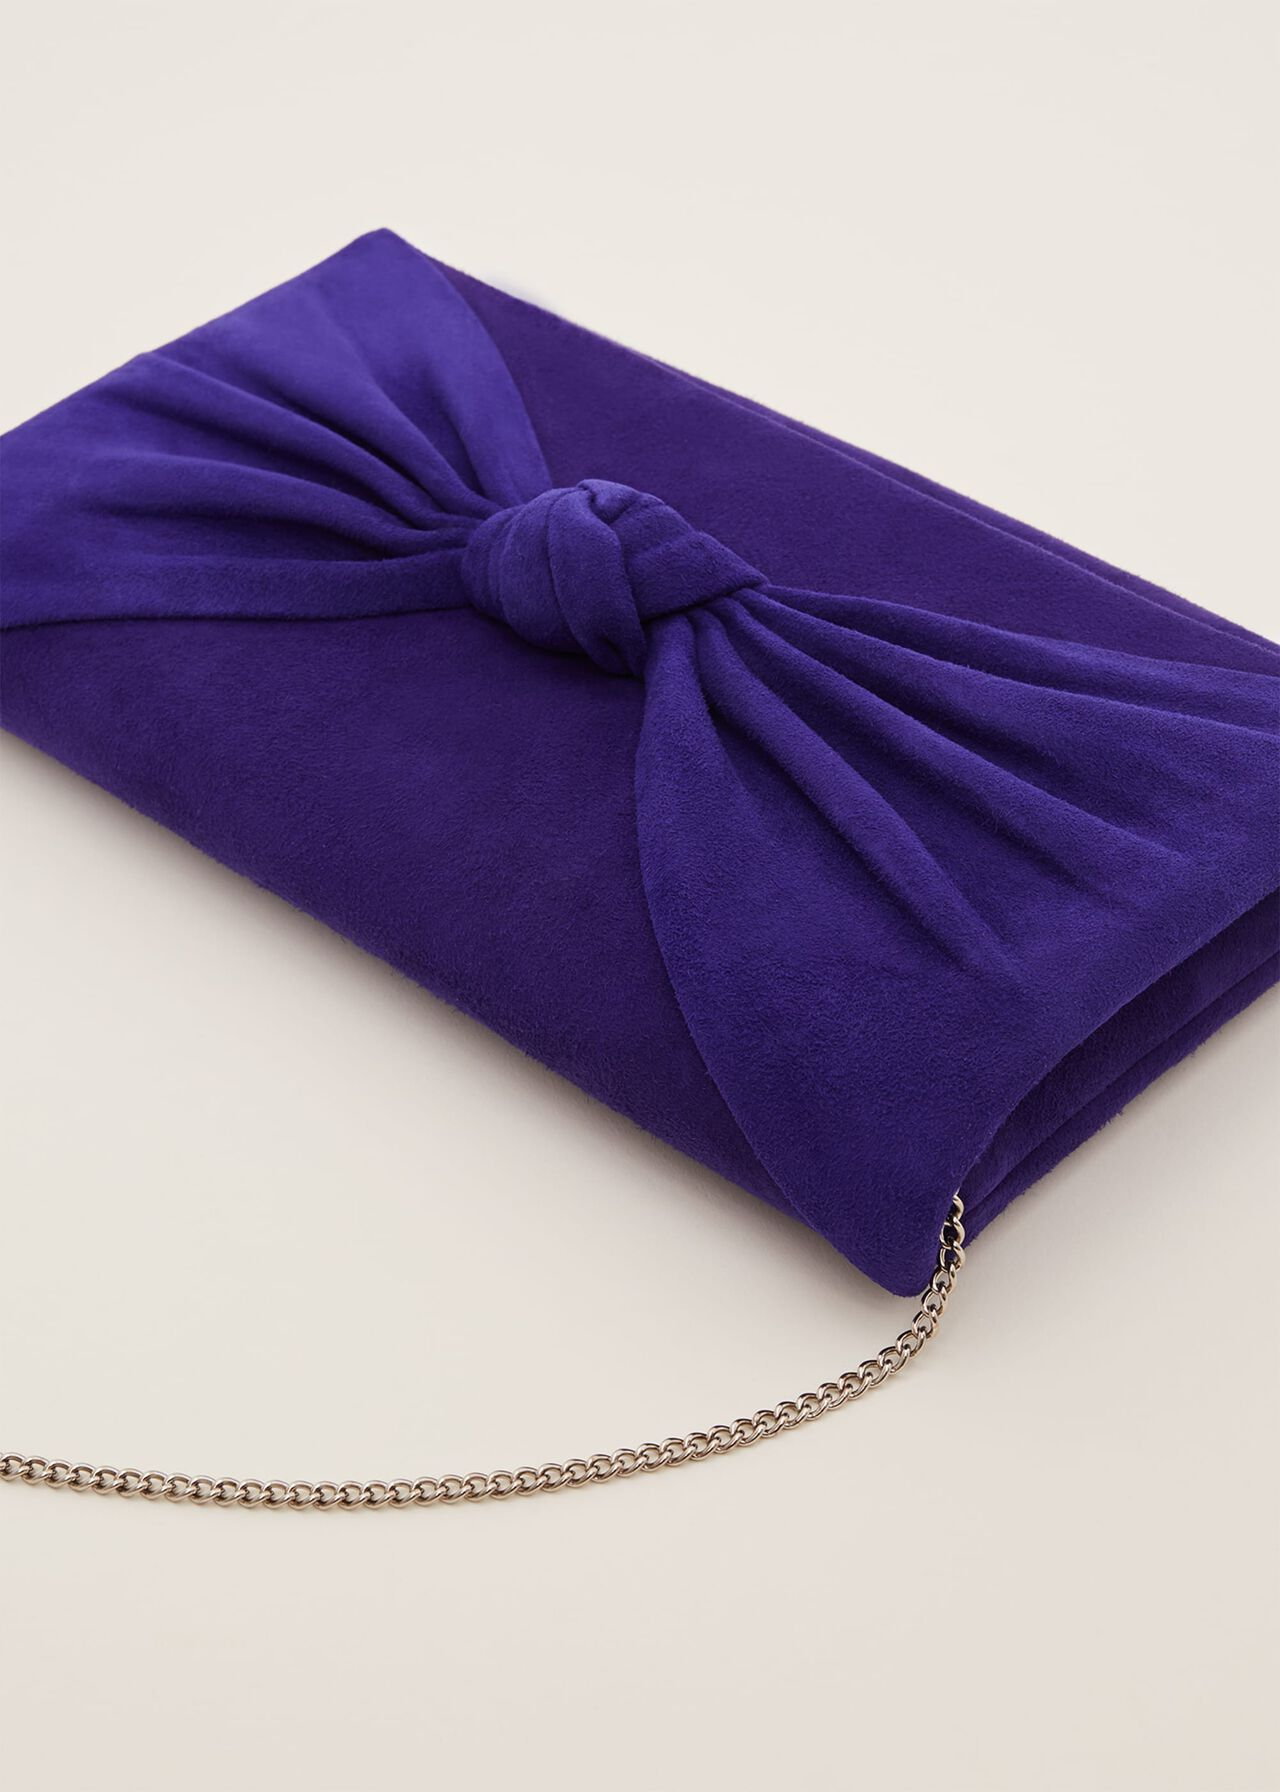 Carrie Knot Front Clutch Bag